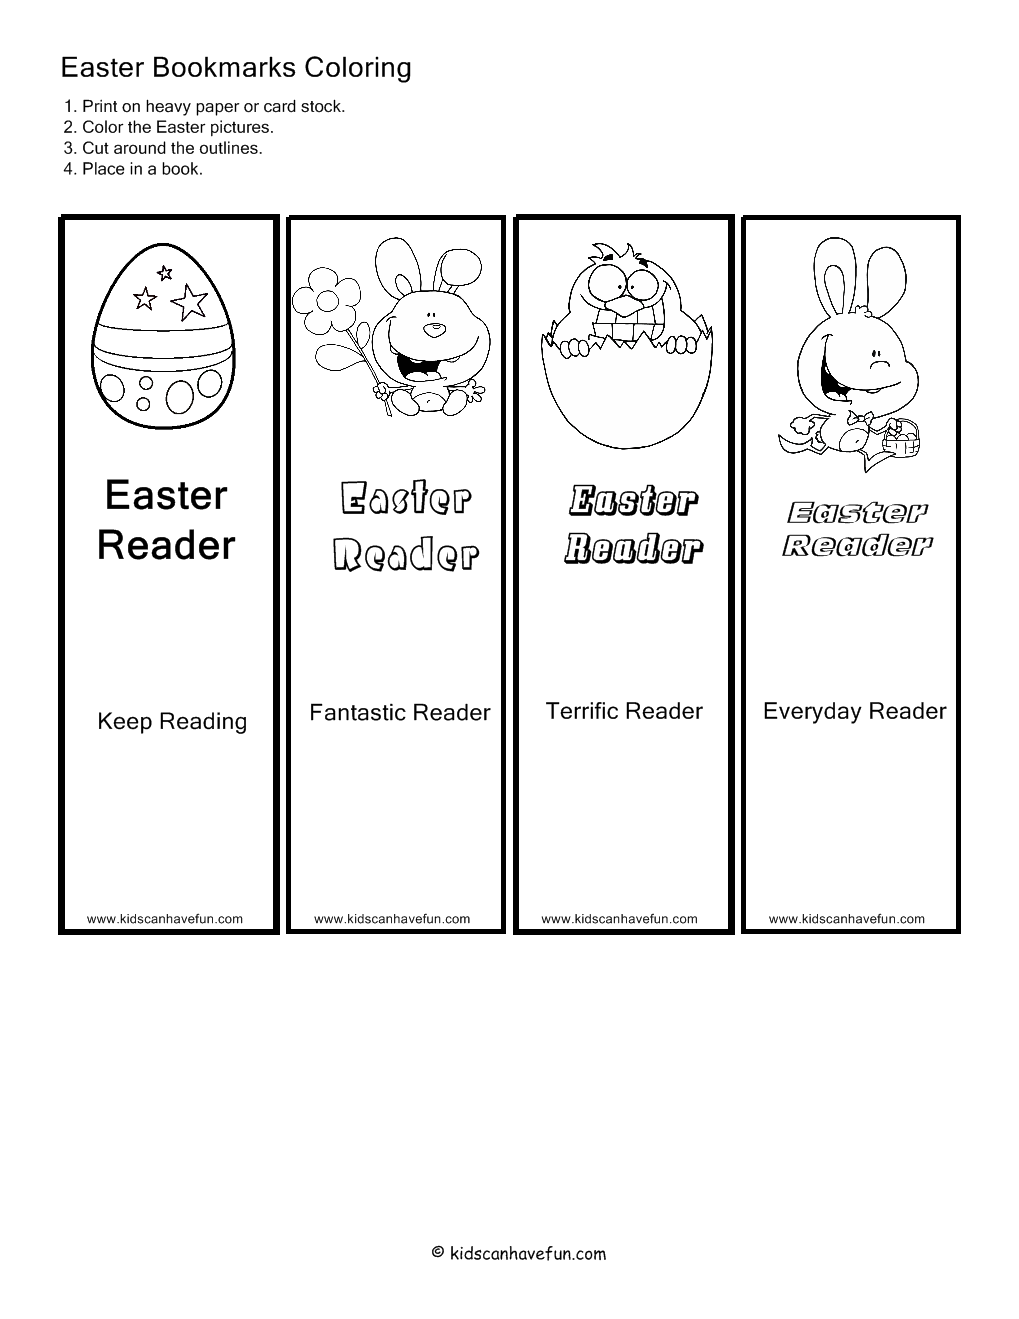 Free coloring page bookmarks